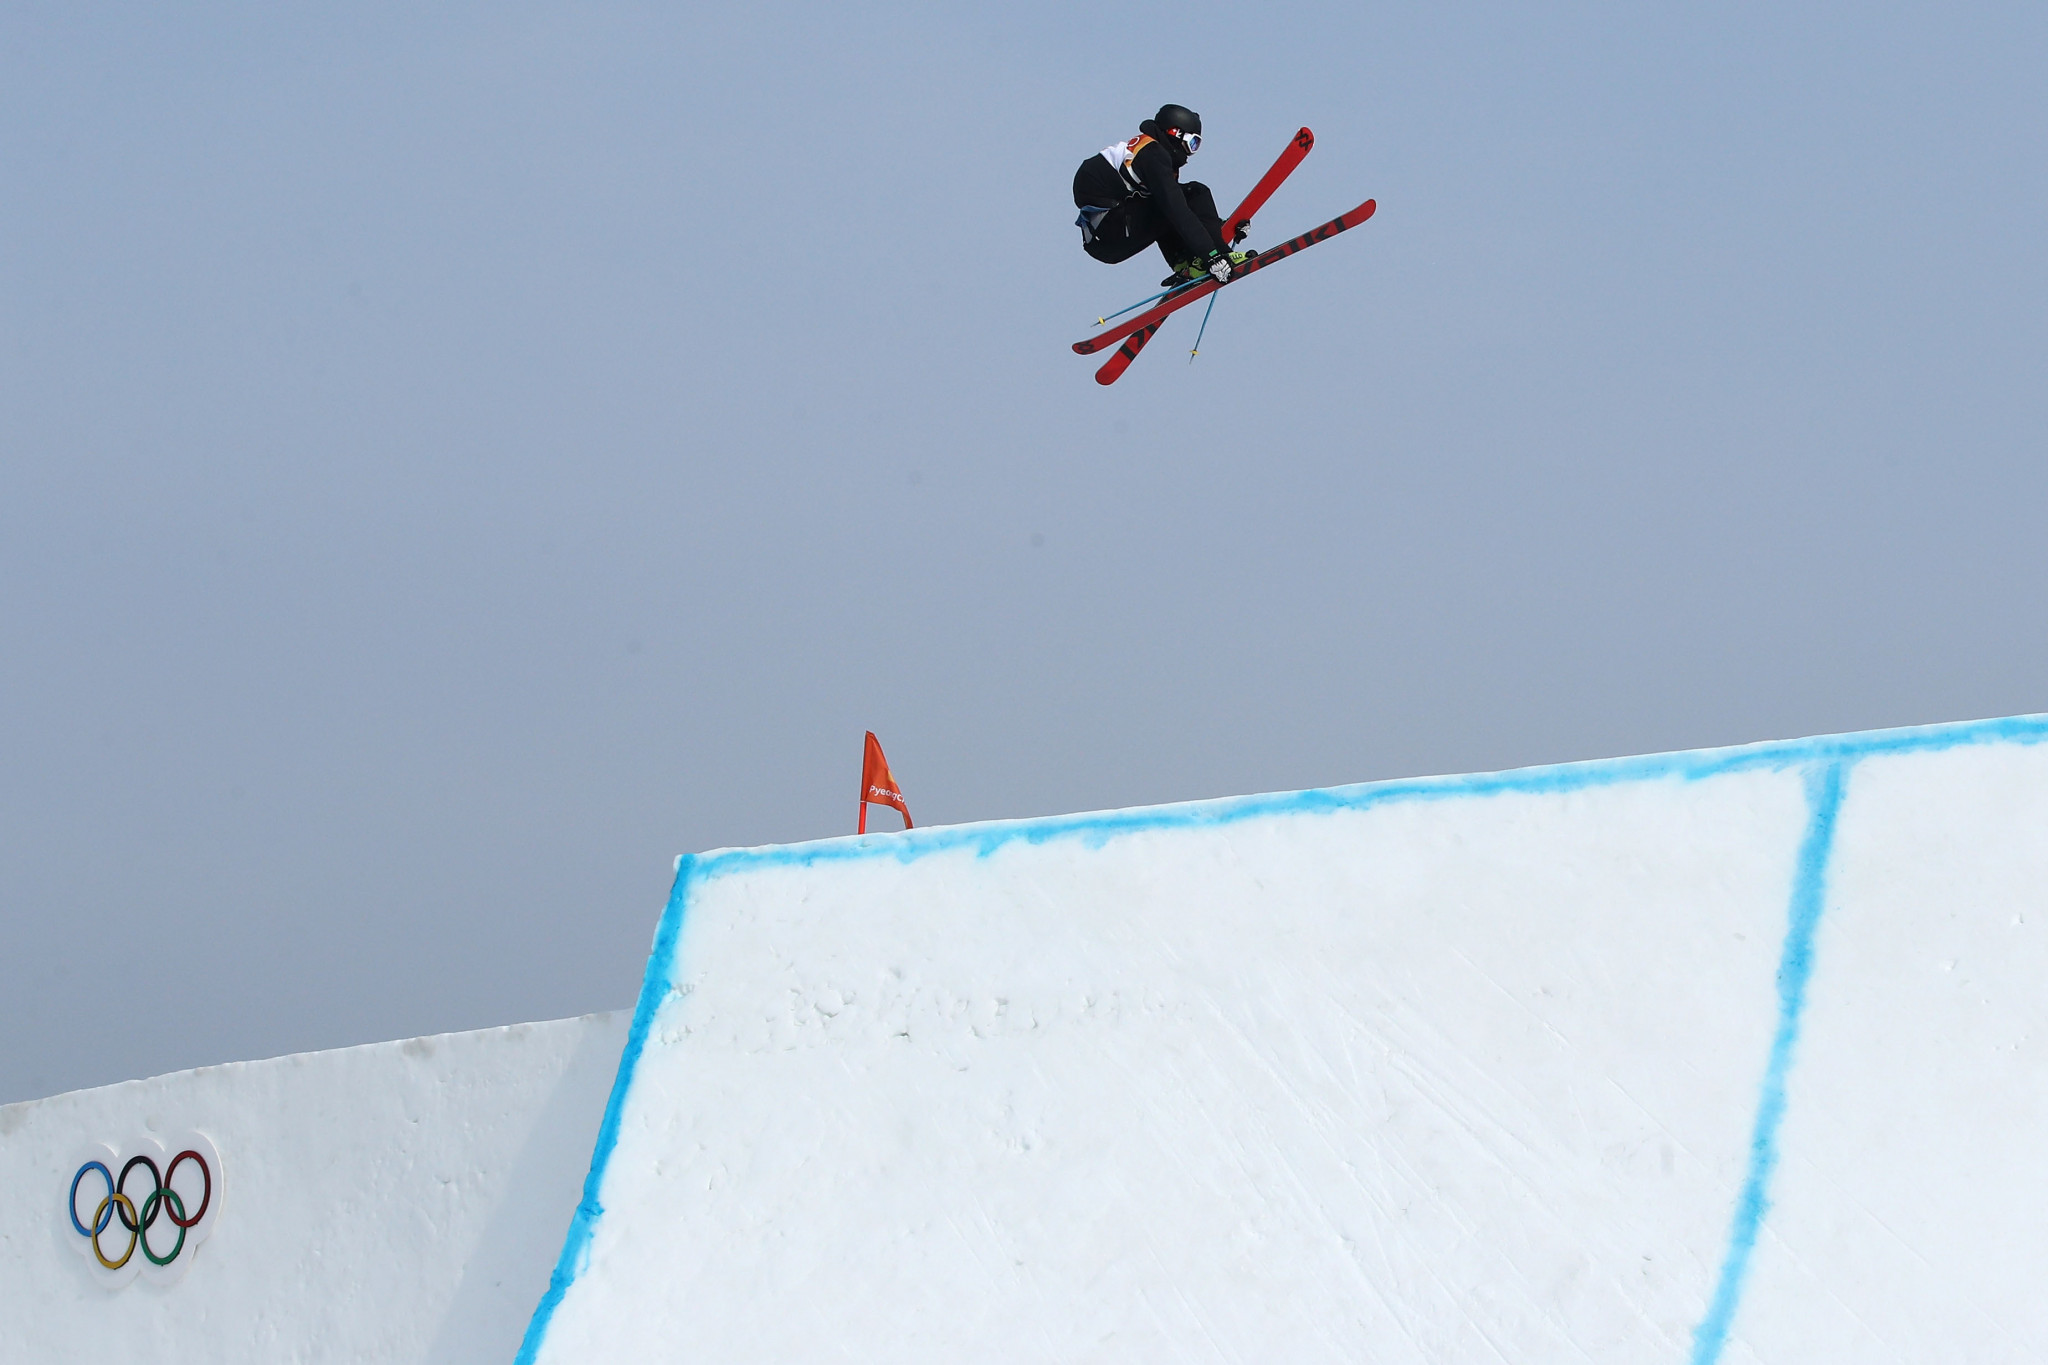 World Cup titles on the line at final slopestyle leg in Seiseralm